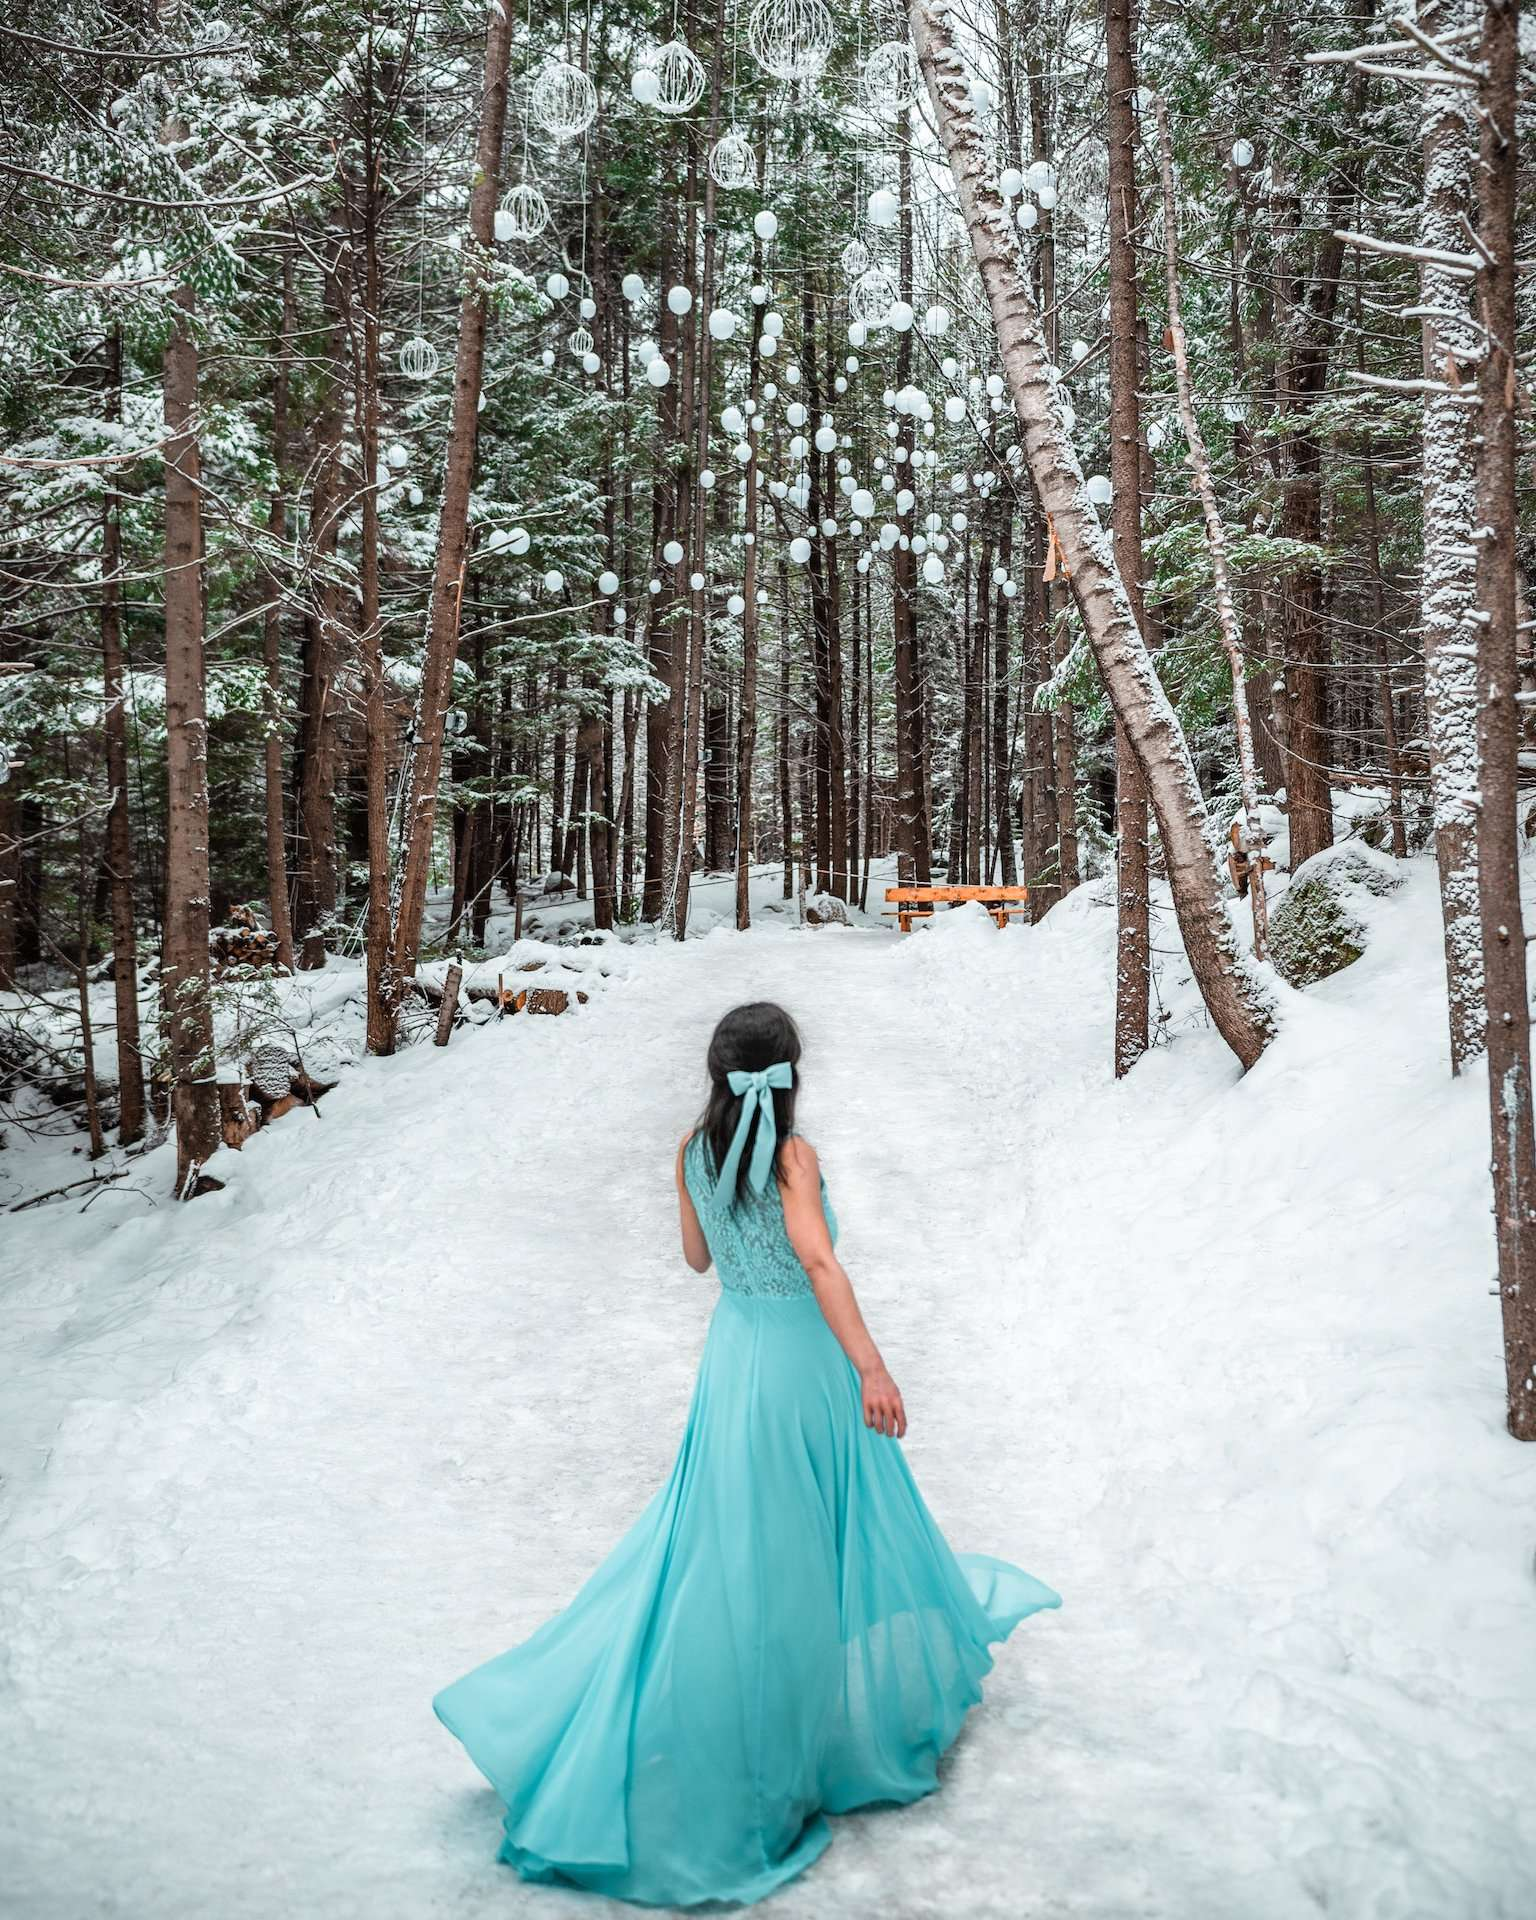 girl in blue dress in snowy forest